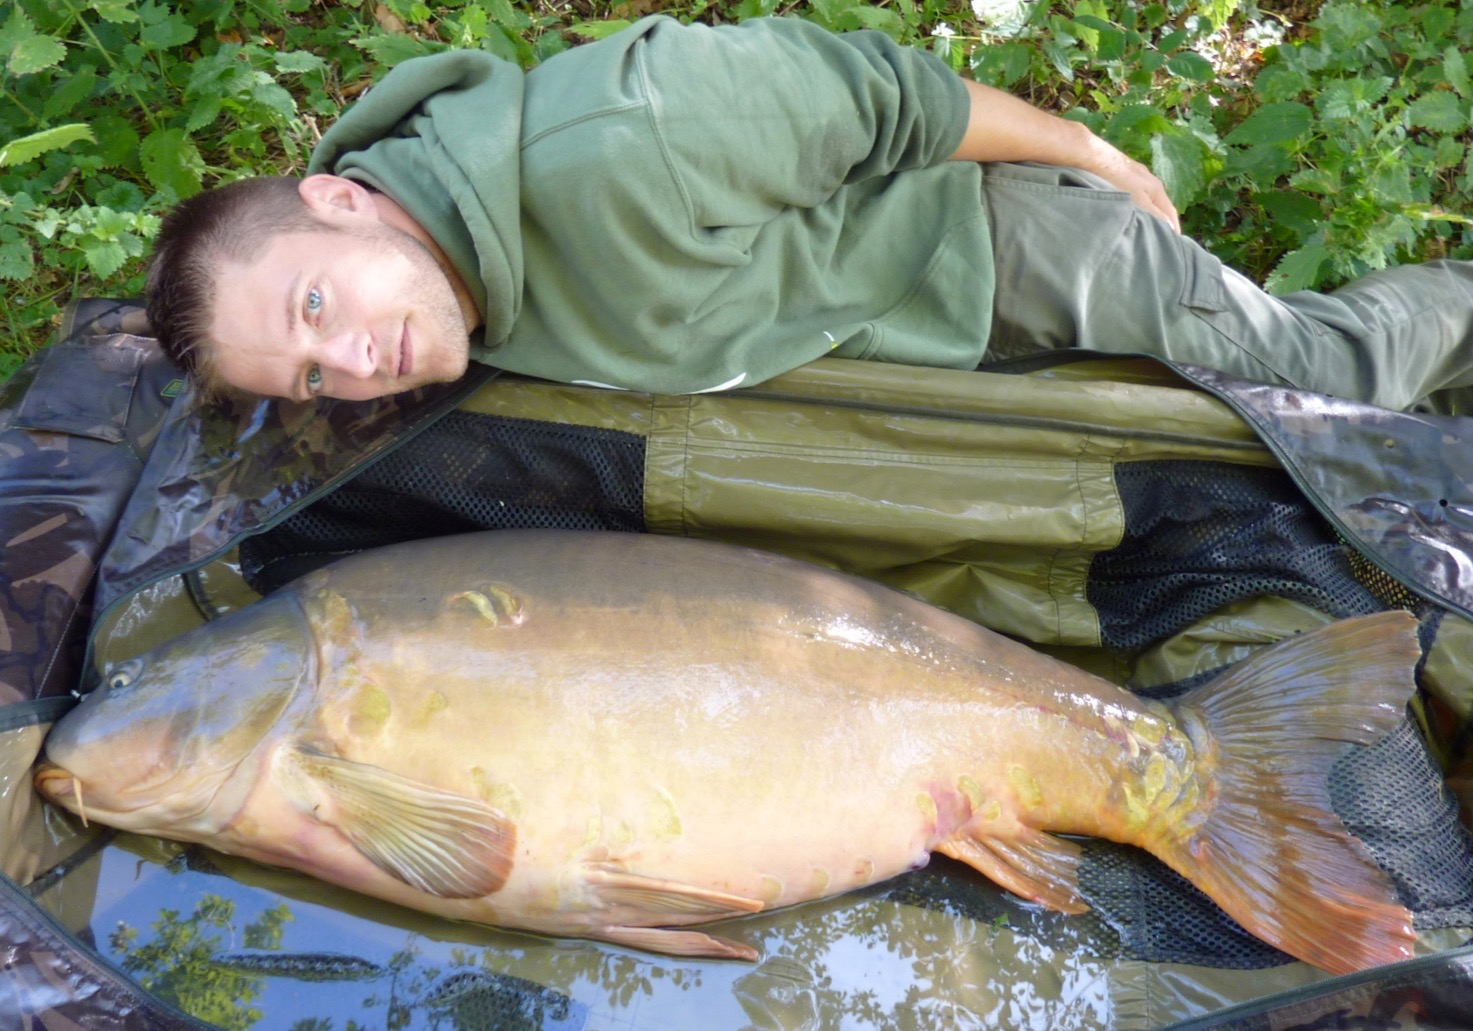 http://www.starbaits.com/fichiers/images/team/gallery/MARTIN_Greg/4.jpg